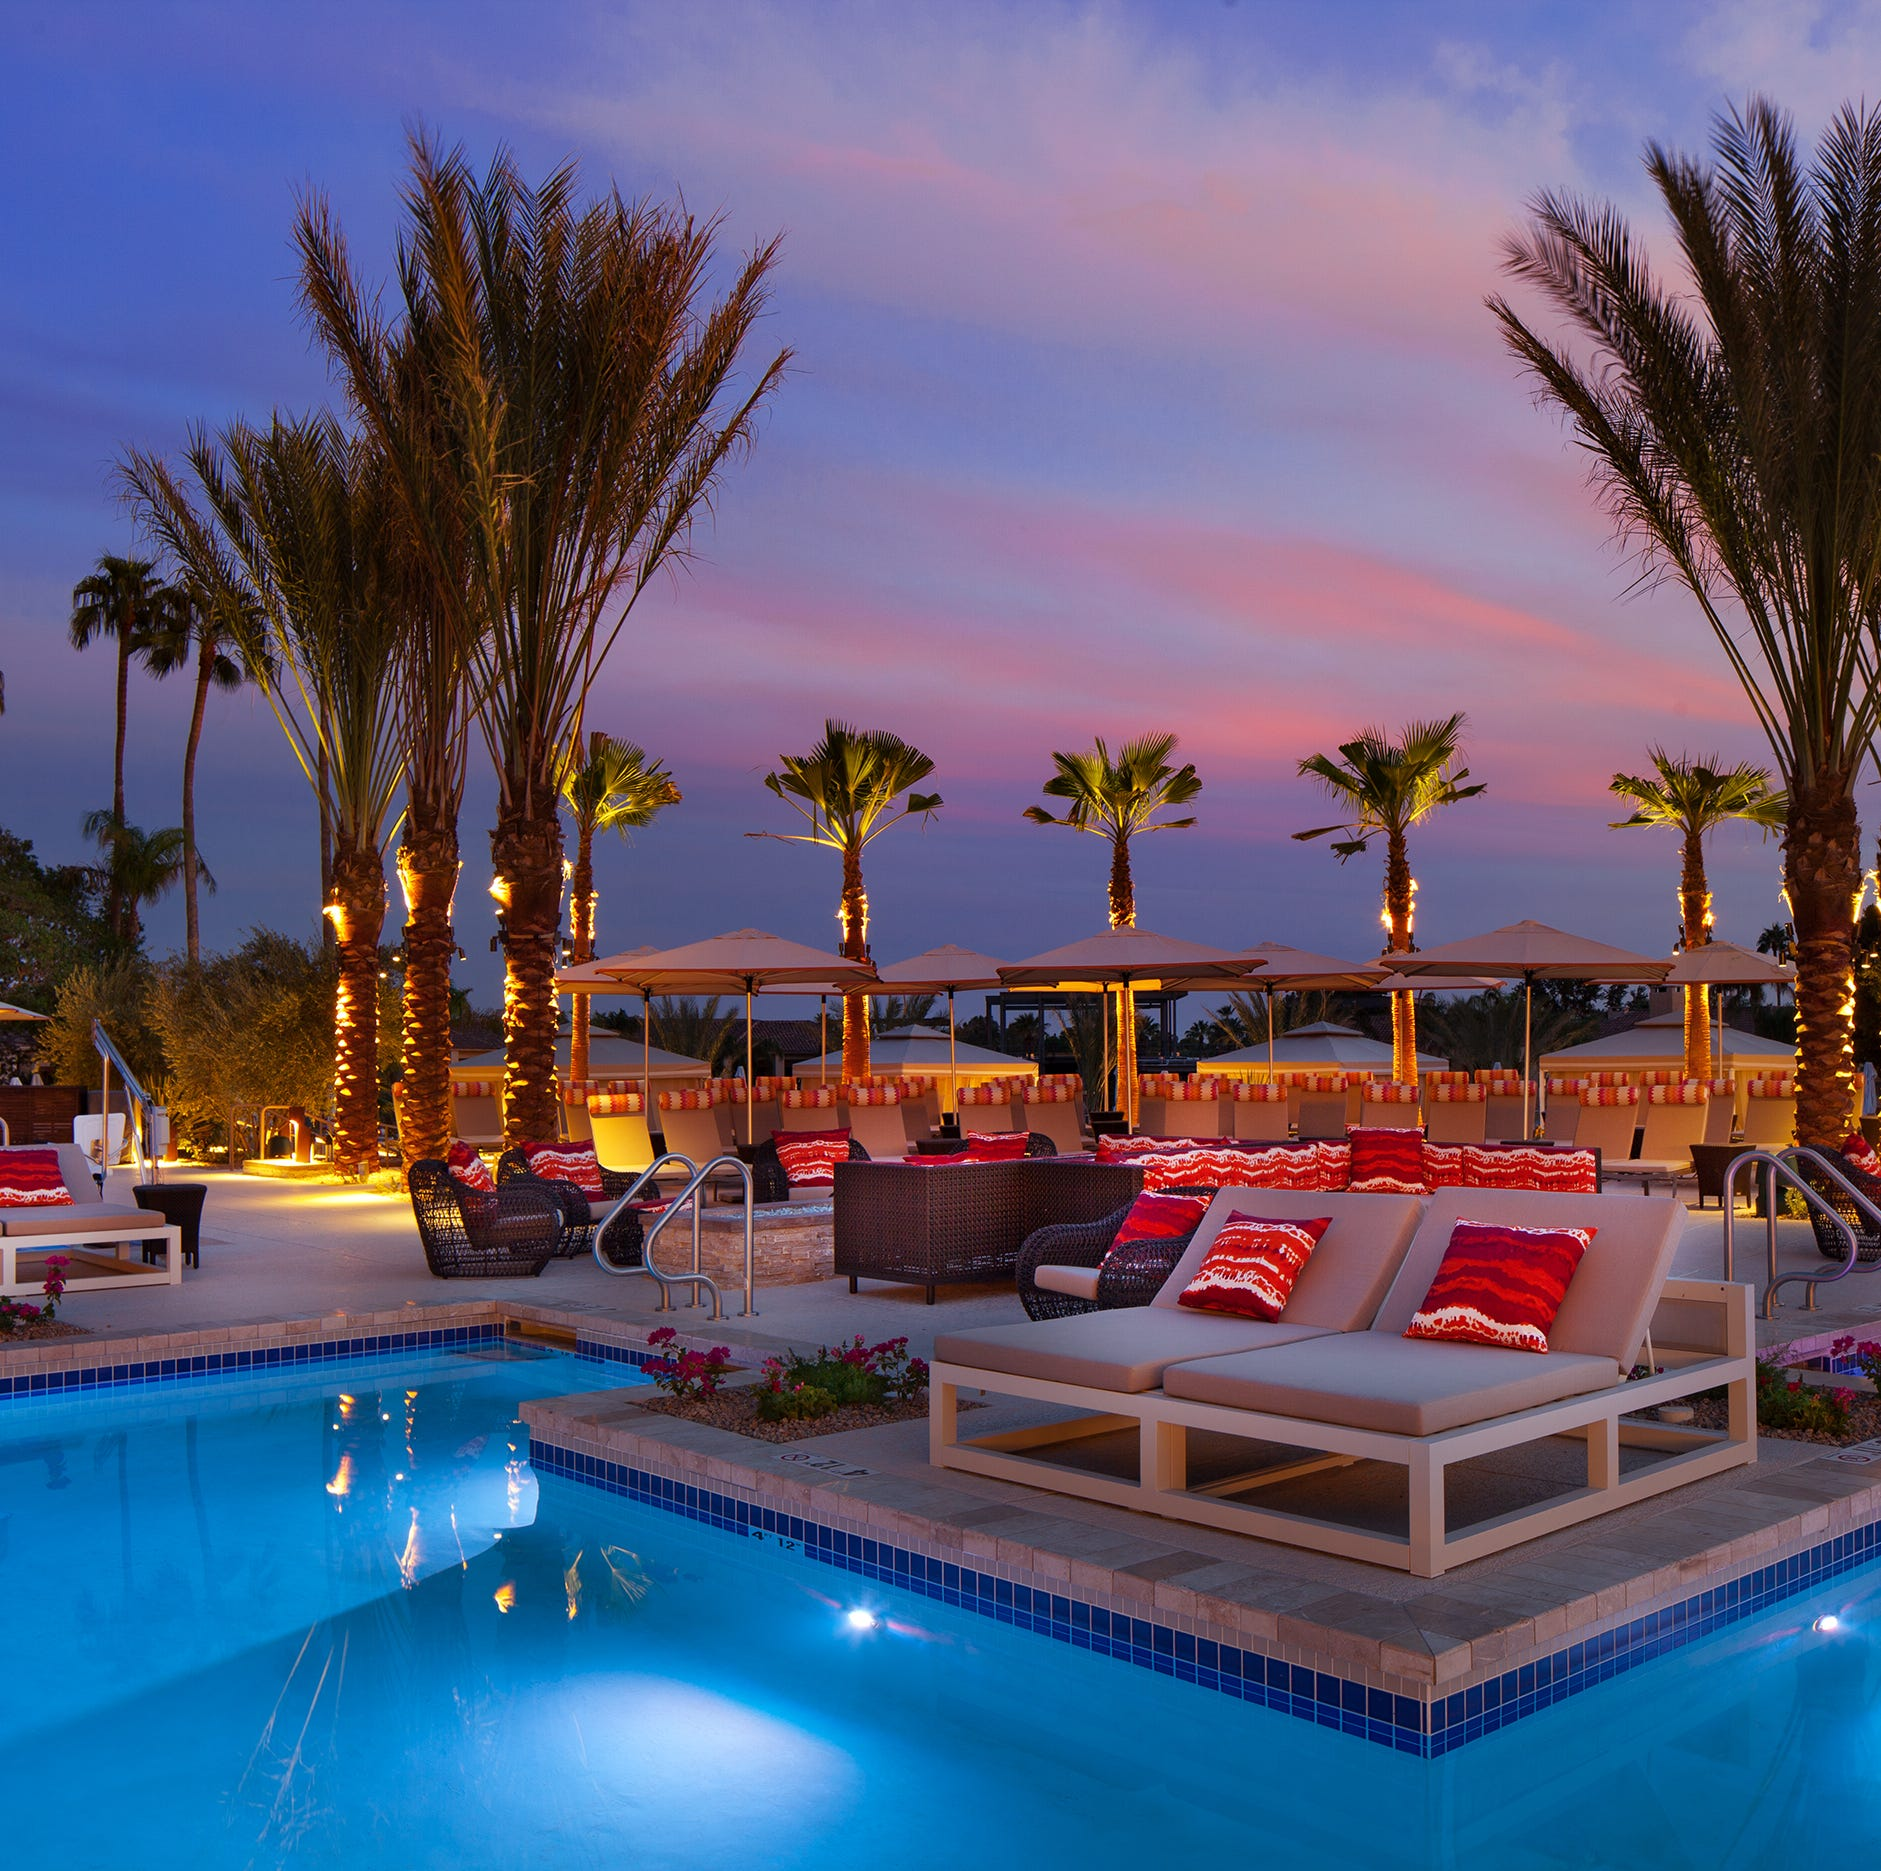 The Phoenician, a luxury resort in Phoenix, Arizona, has a new reserved seating section at one of its pools. Guests pay $25 to $50 per lounge chair depending on the day and season.